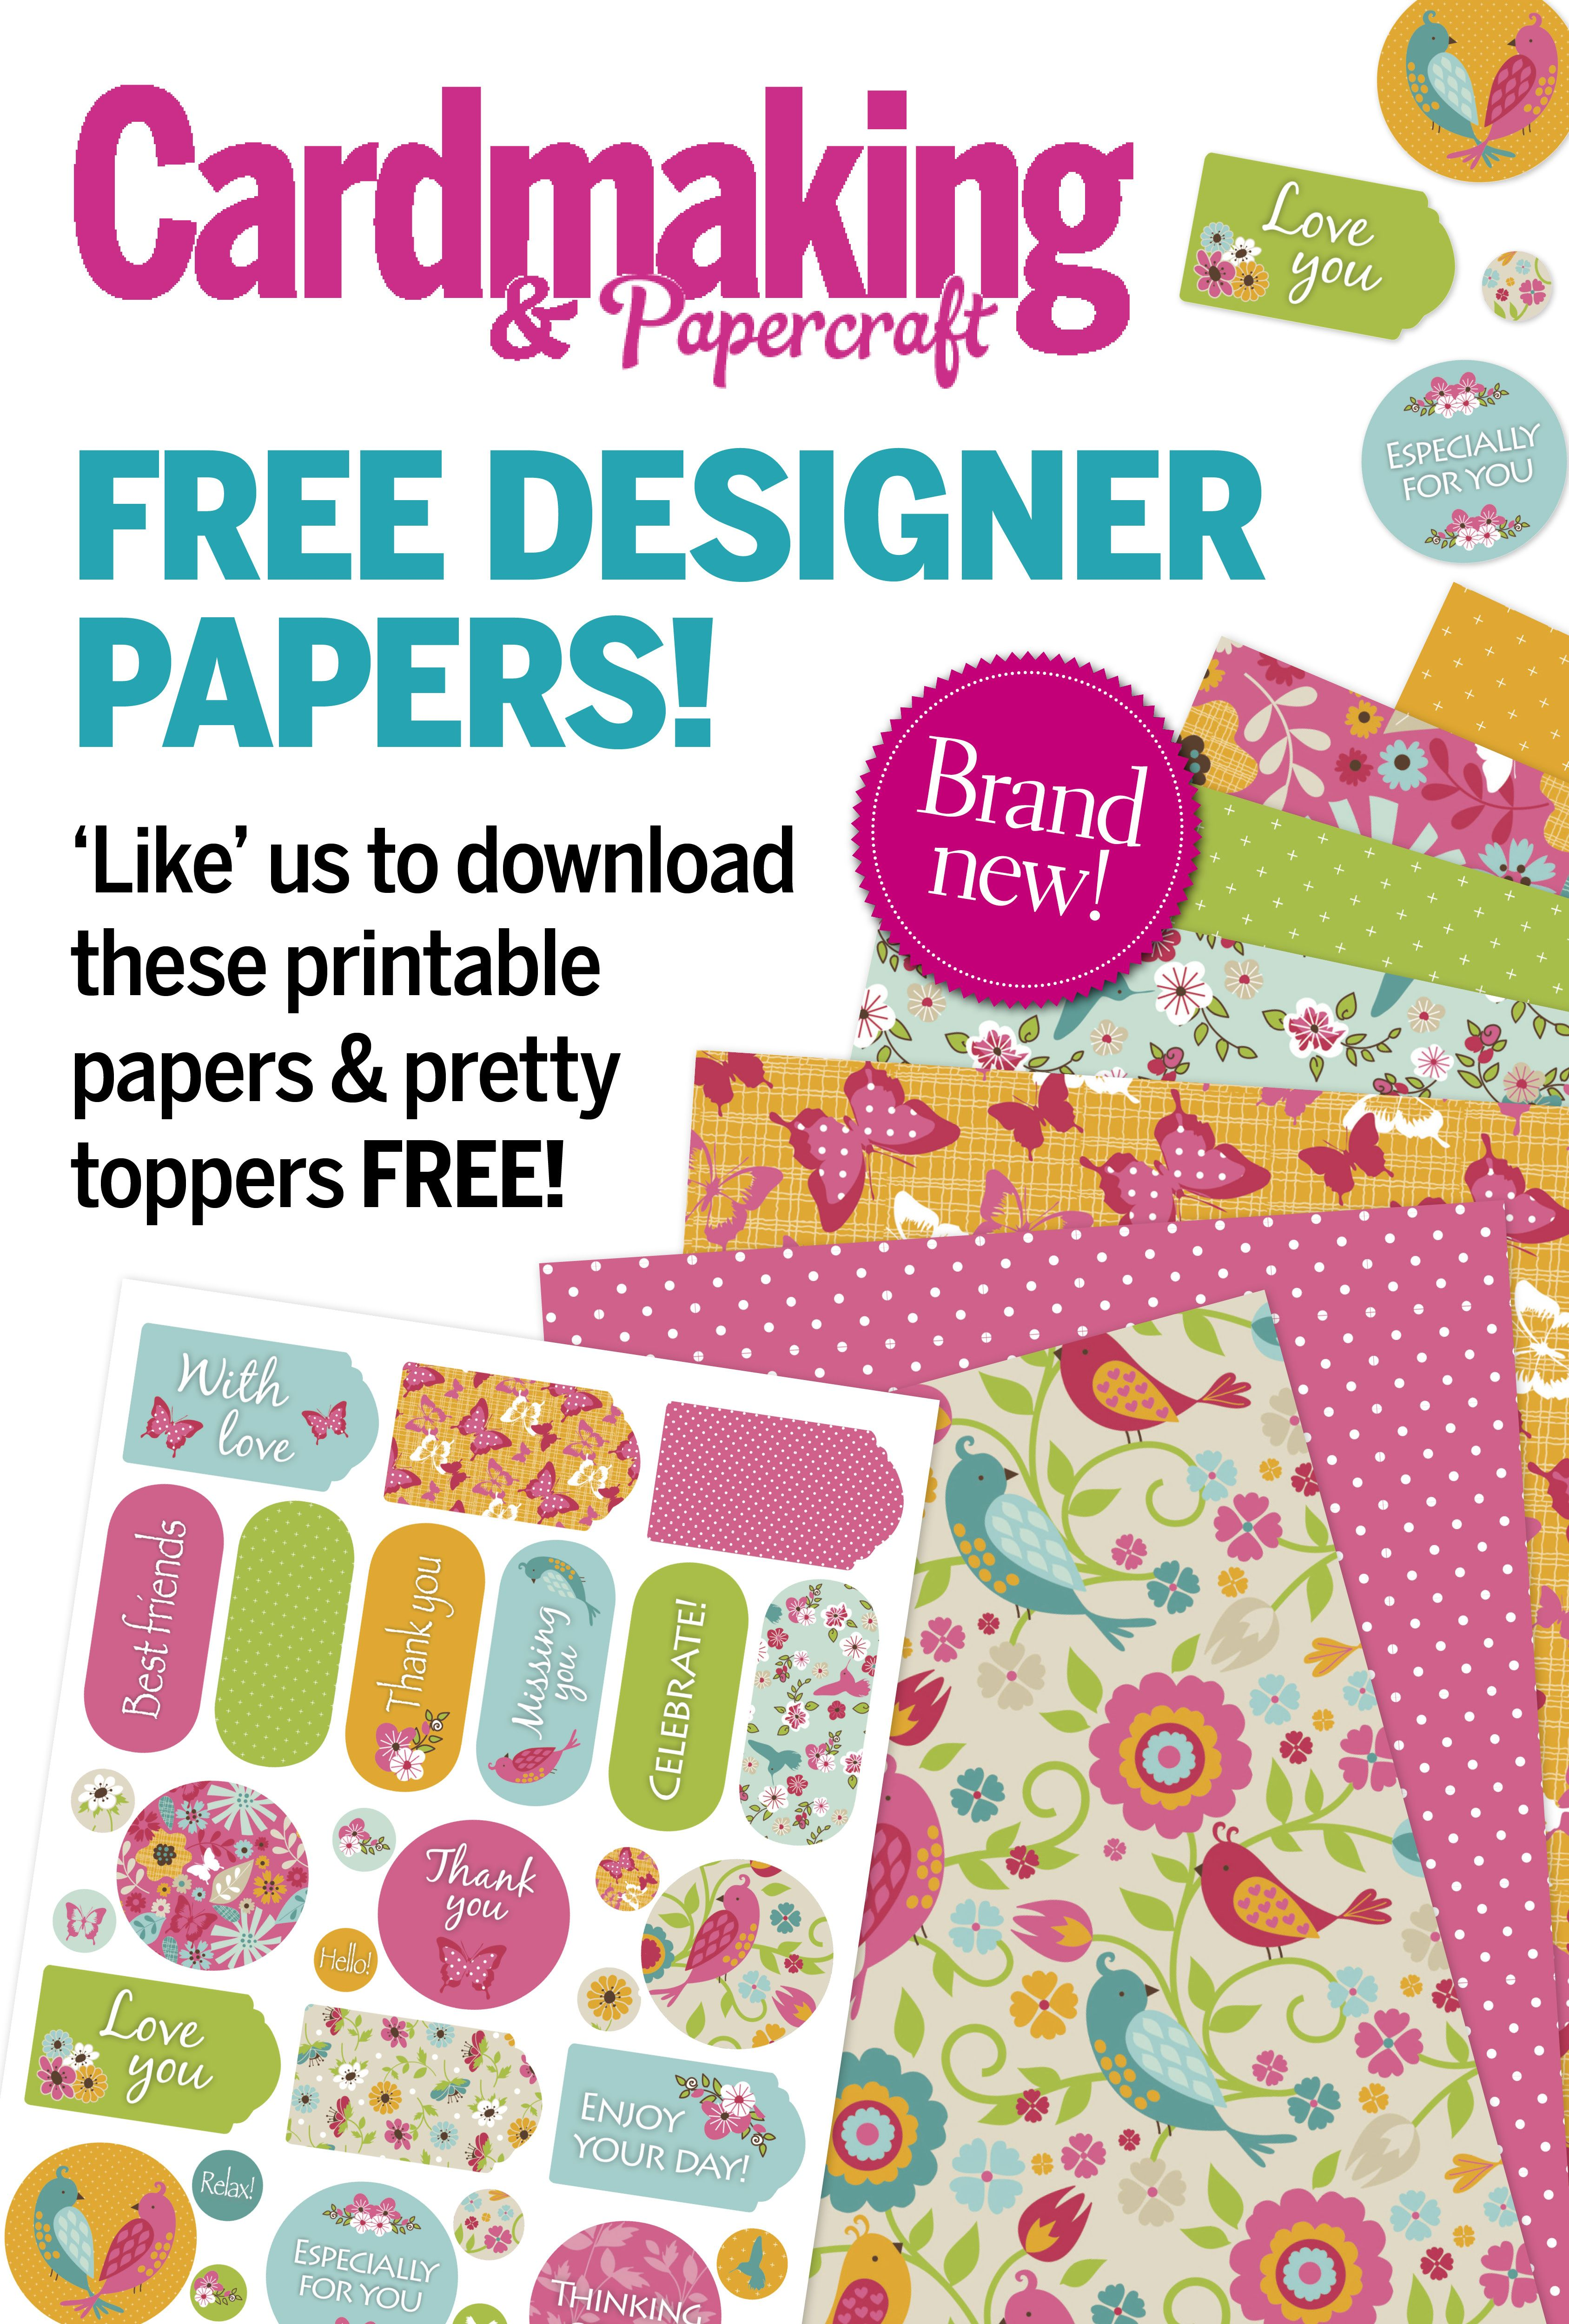 Like our Facebook page to download these beautiful papers for FREE! https://www.facebook.com/cardmakingmag?fref=ts